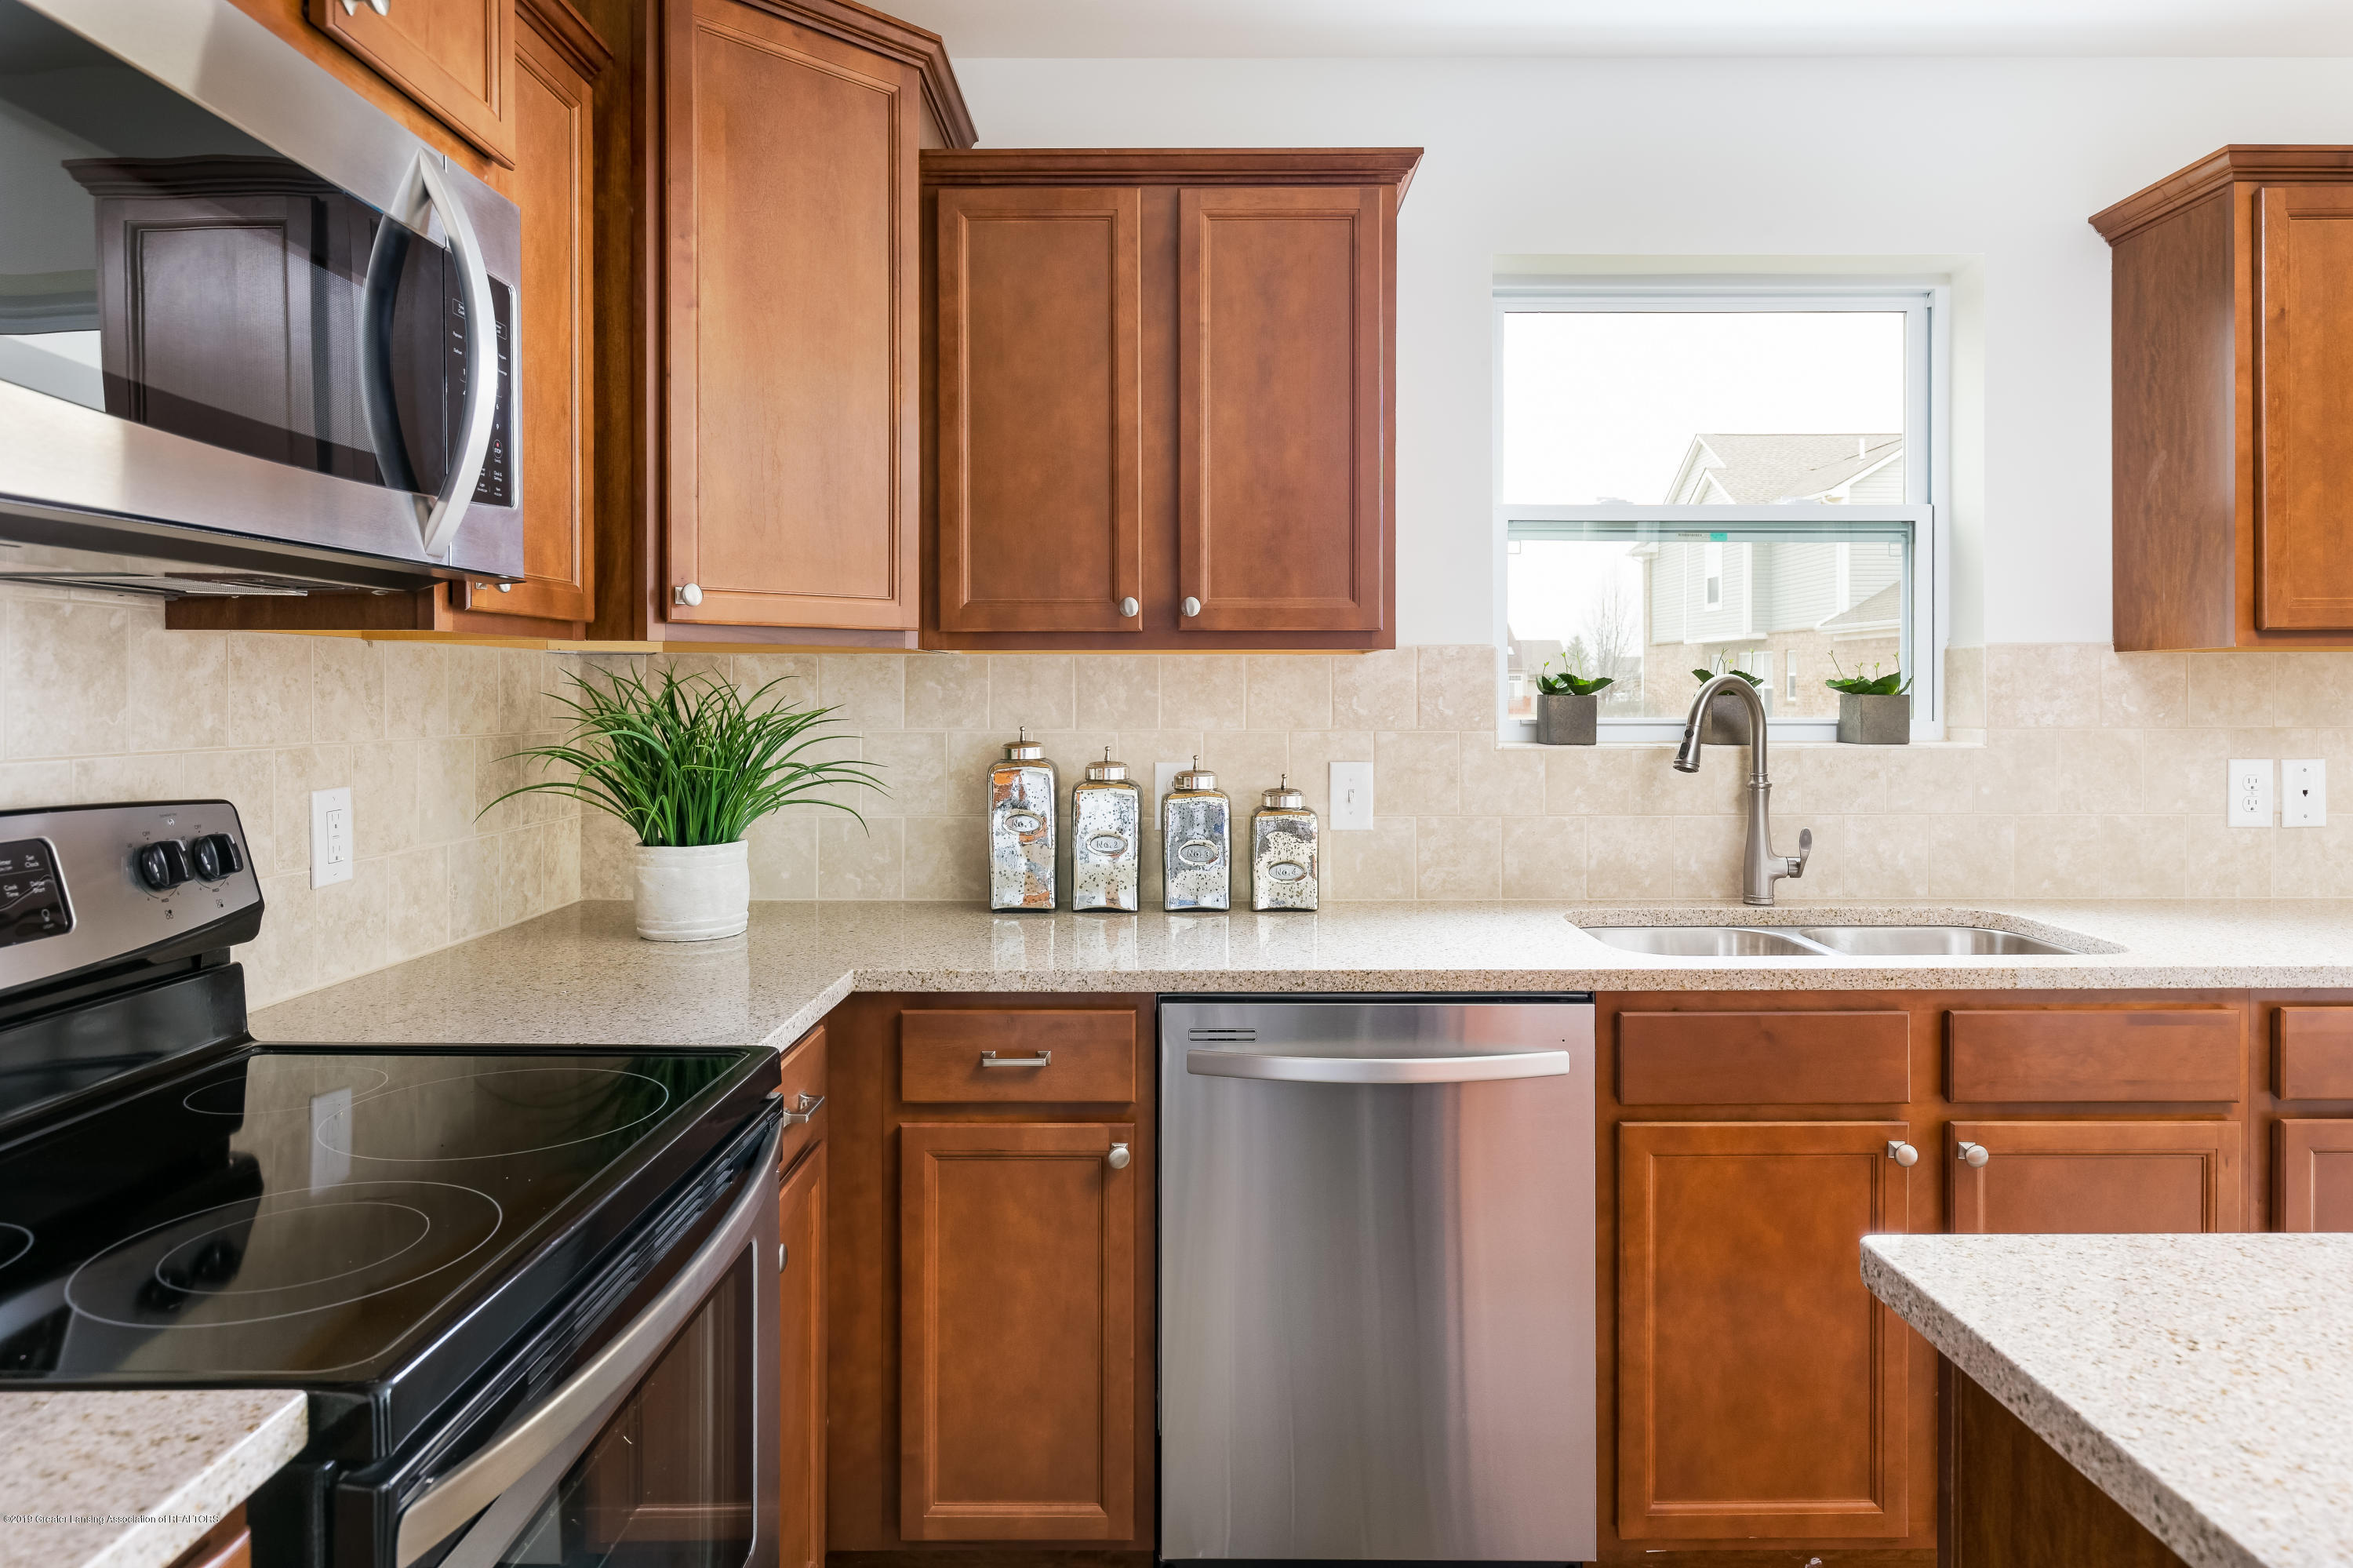 201 Ayla Drive - Kitchen TSP077-E2070-Staged-15 - 8